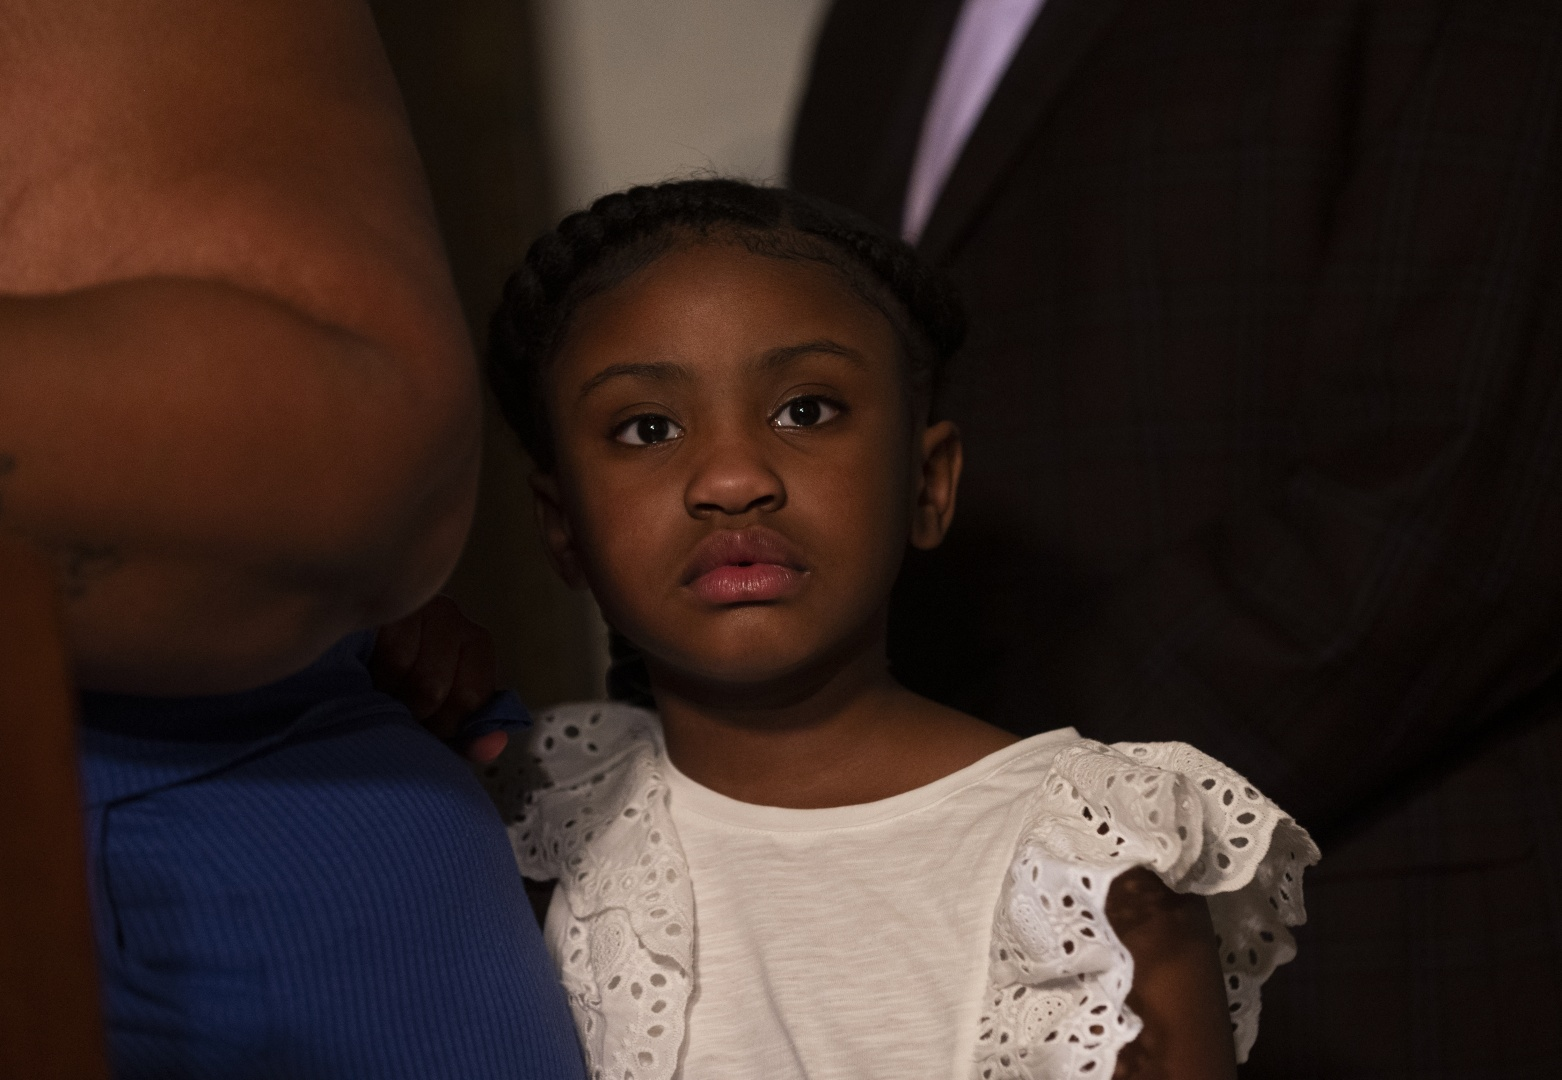 MINNEAPOLIS, MN - JUNE 2: George Floyd's daughter Gianna Floyd, attends a press conference with her mother Roxie Washington on June 2, 2020 in Minneapolis, Minnesota. Washington was joined by her daughter and Floyd's friend, former NBA Player Stephen Jackson, speaking about the impact of his death on their family. (Photo by Stephen Maturen/Getty Images)